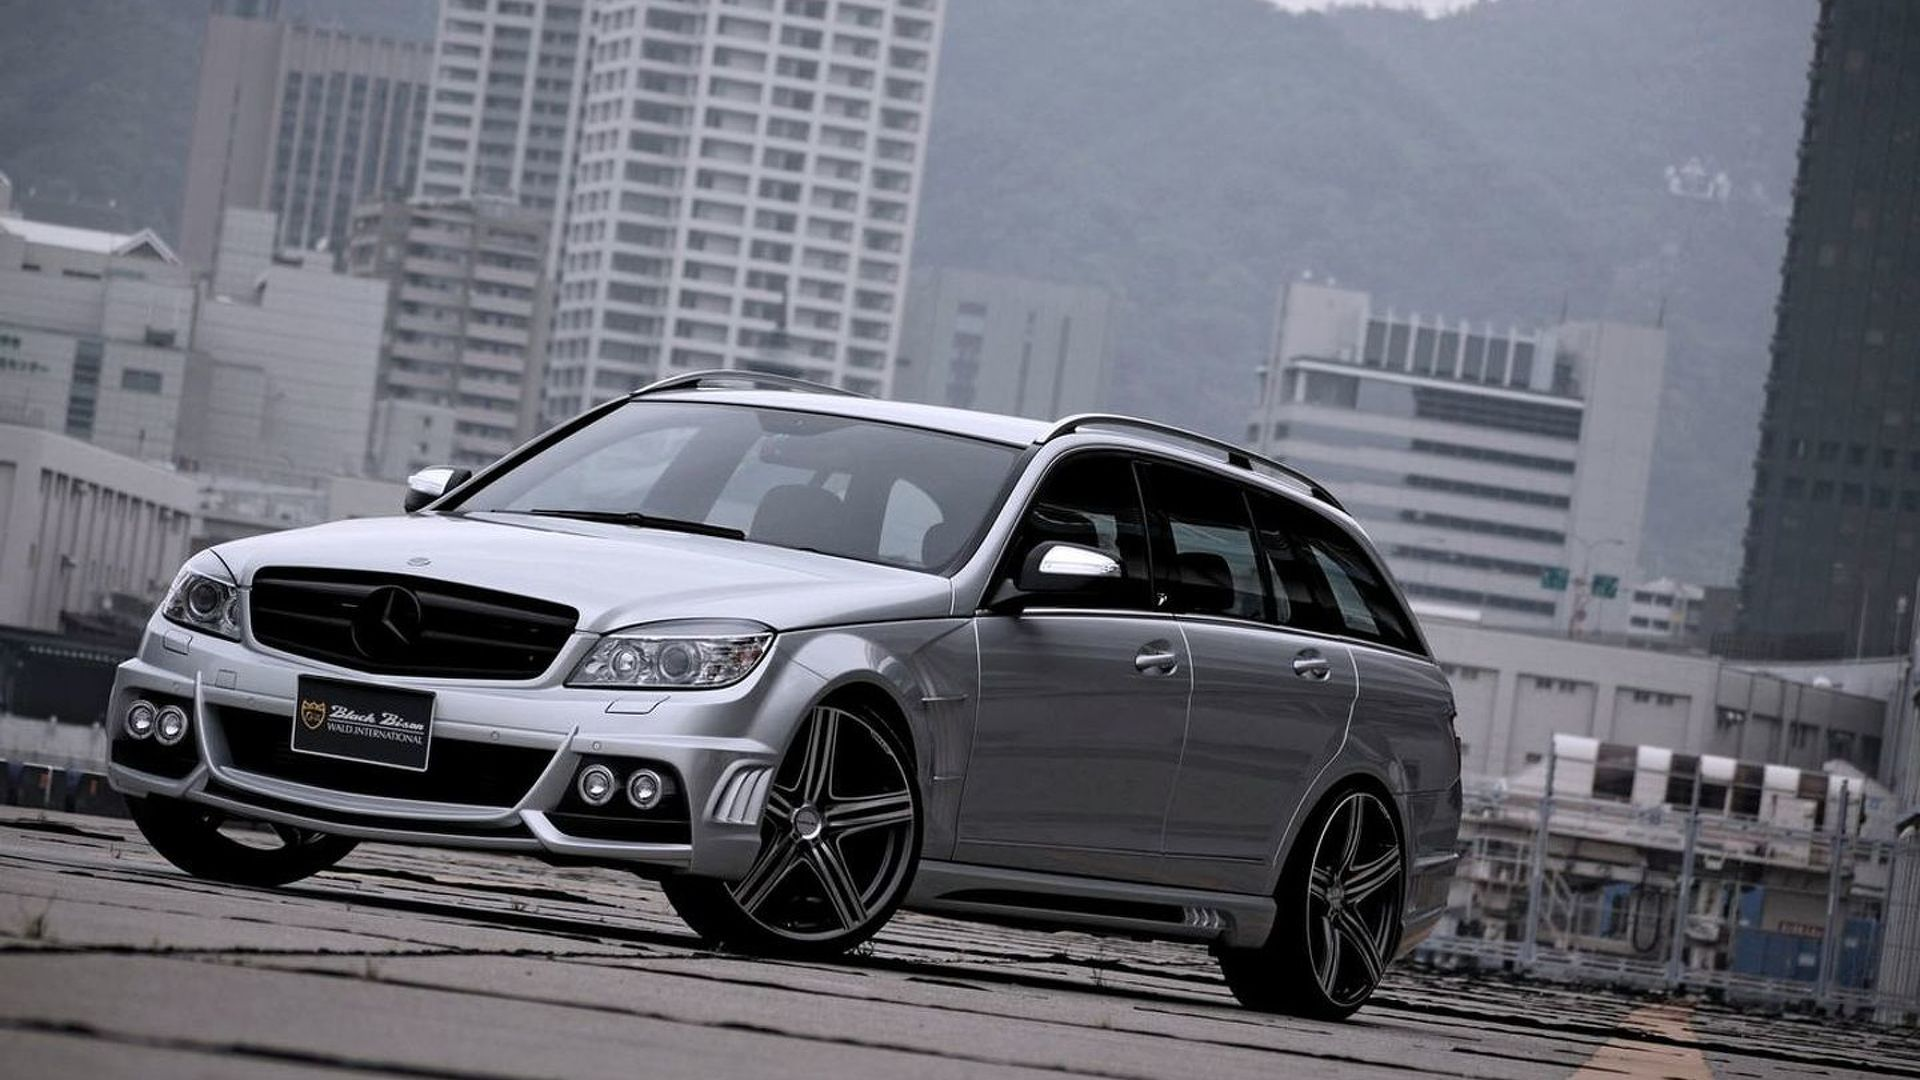 SPORTS LINE Black Bison Editions for Mercedes C Class Wagon amp R Class